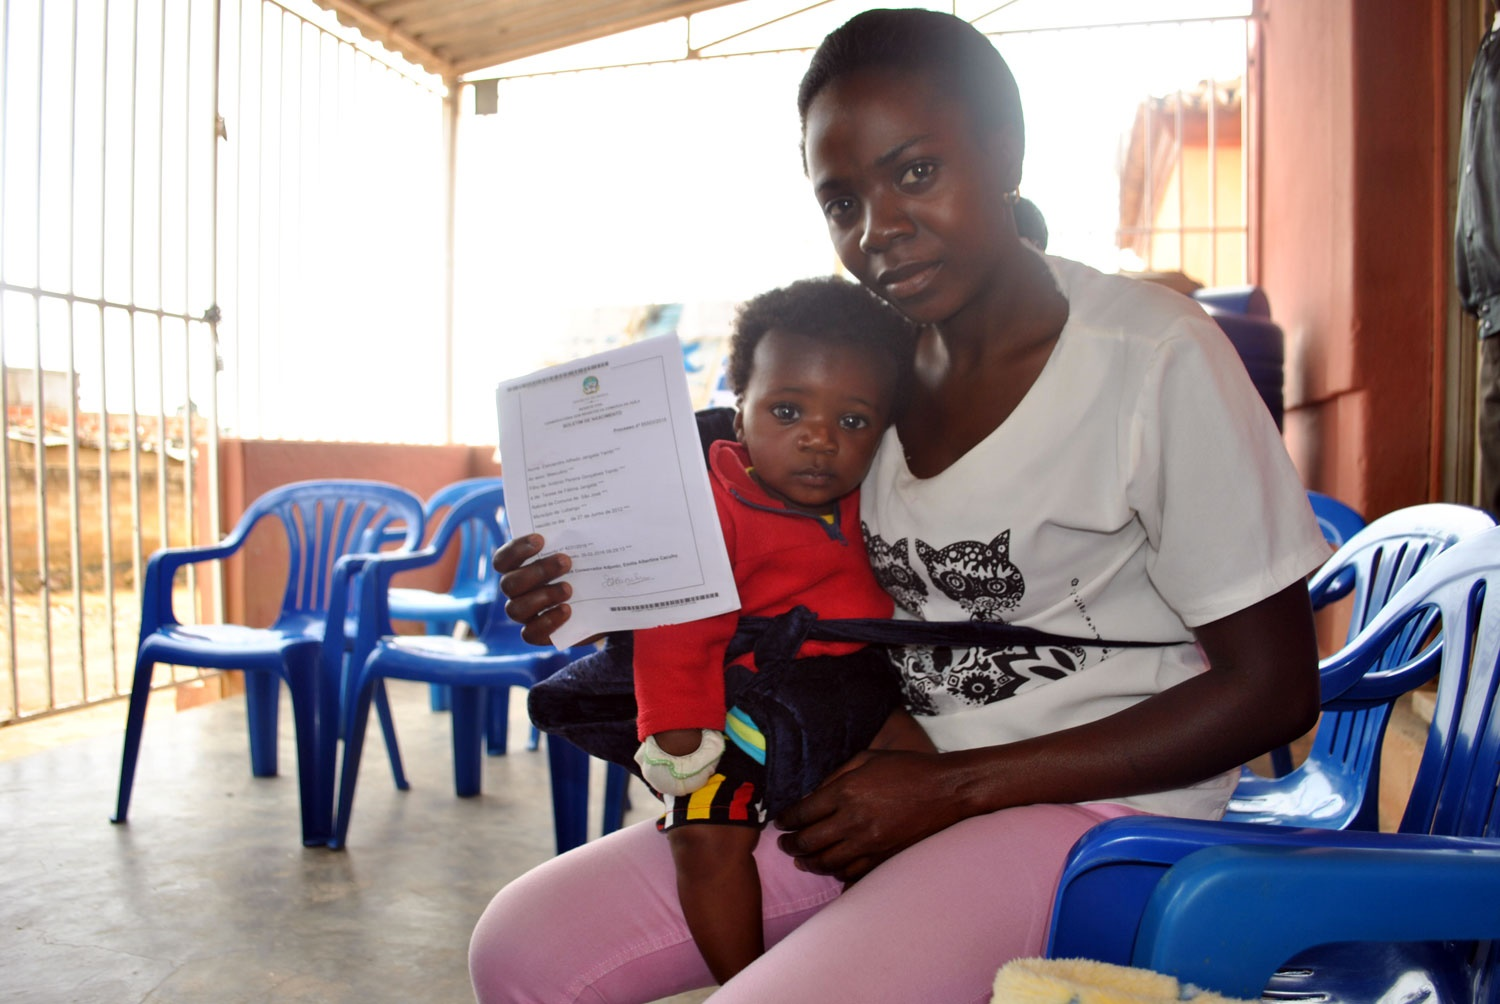 A woman with her child showing a paper.